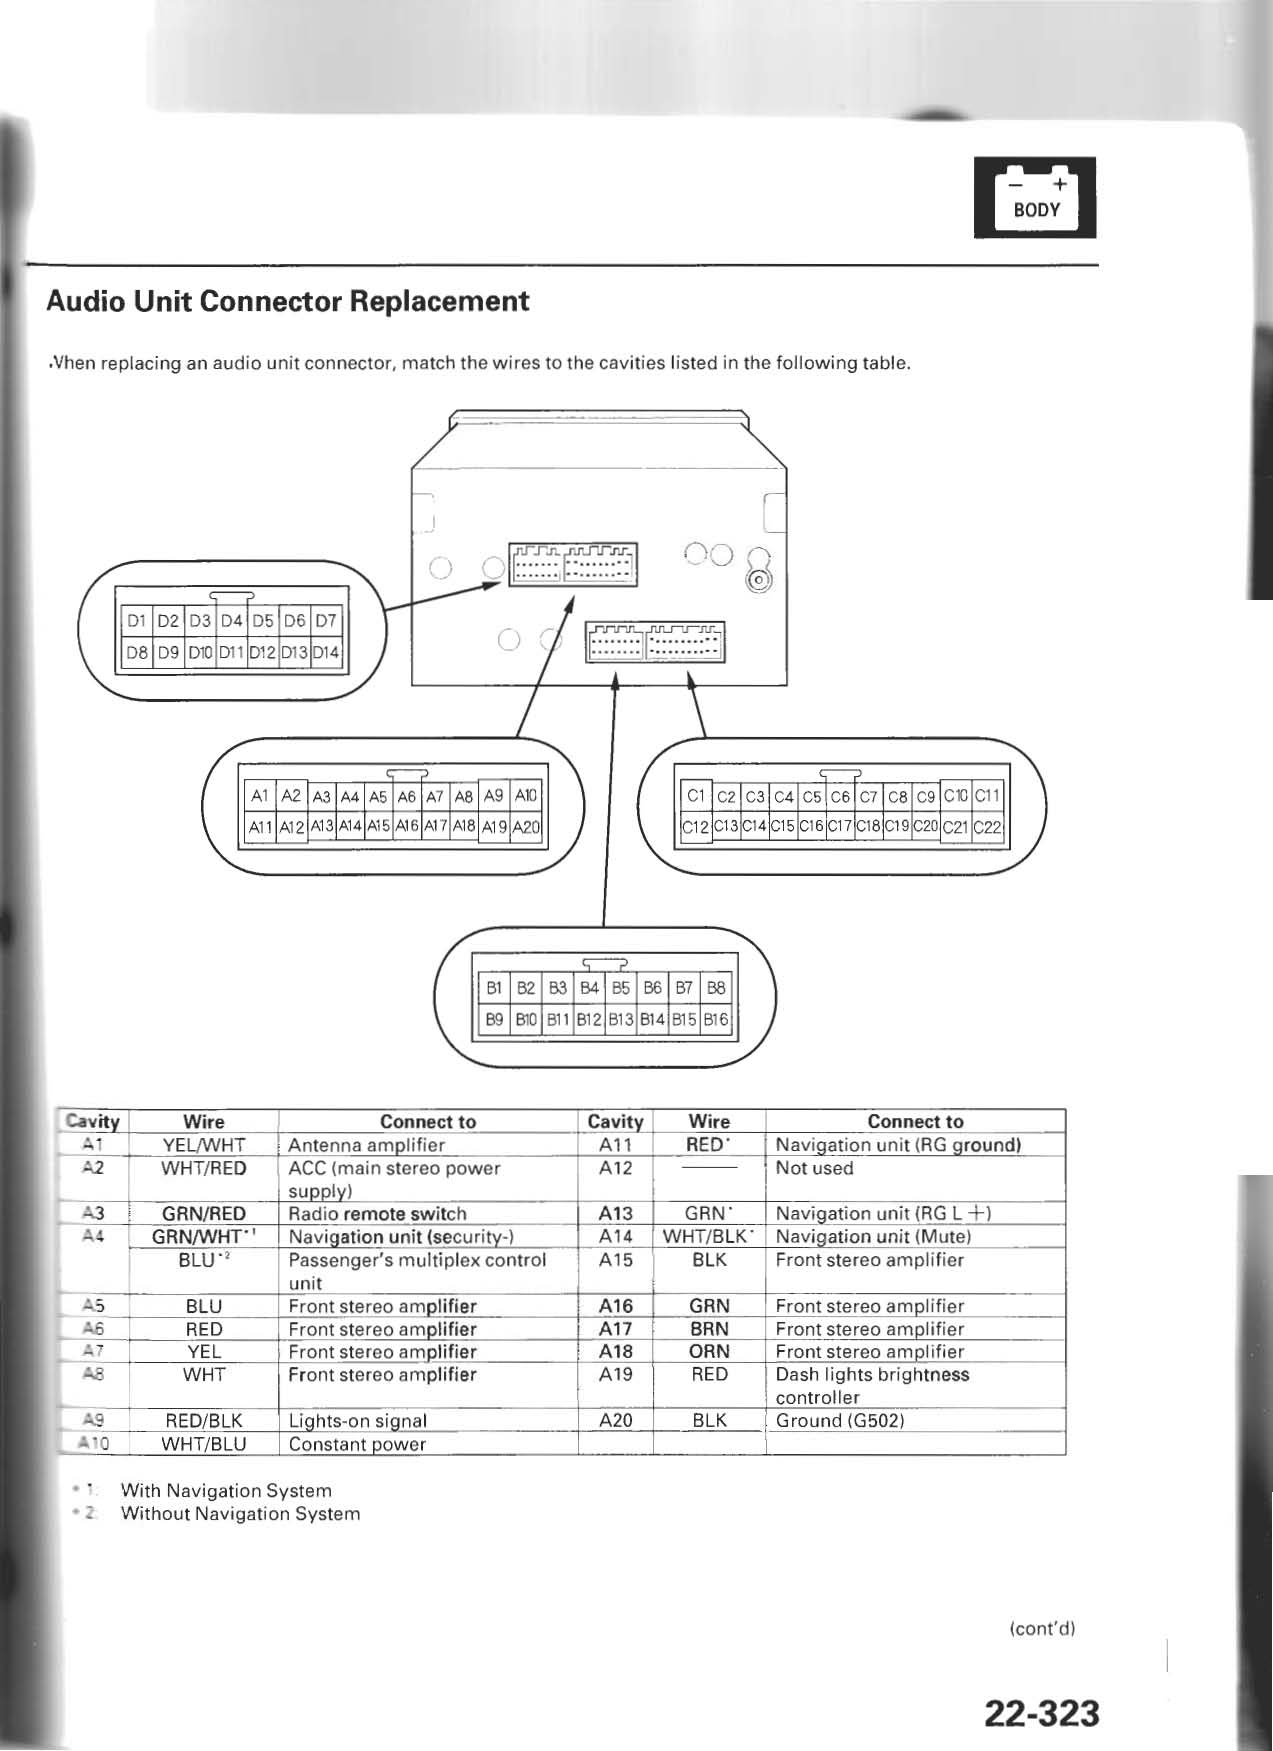 30384d1111169775 retrofit 01 04 mdx w bluetooth outs 2003 mdx radio retrofit 01 04 mdx w bluetooth page 2 acura mdx forum acura 2005 acura tl amp wiring diagram at readyjetset.co